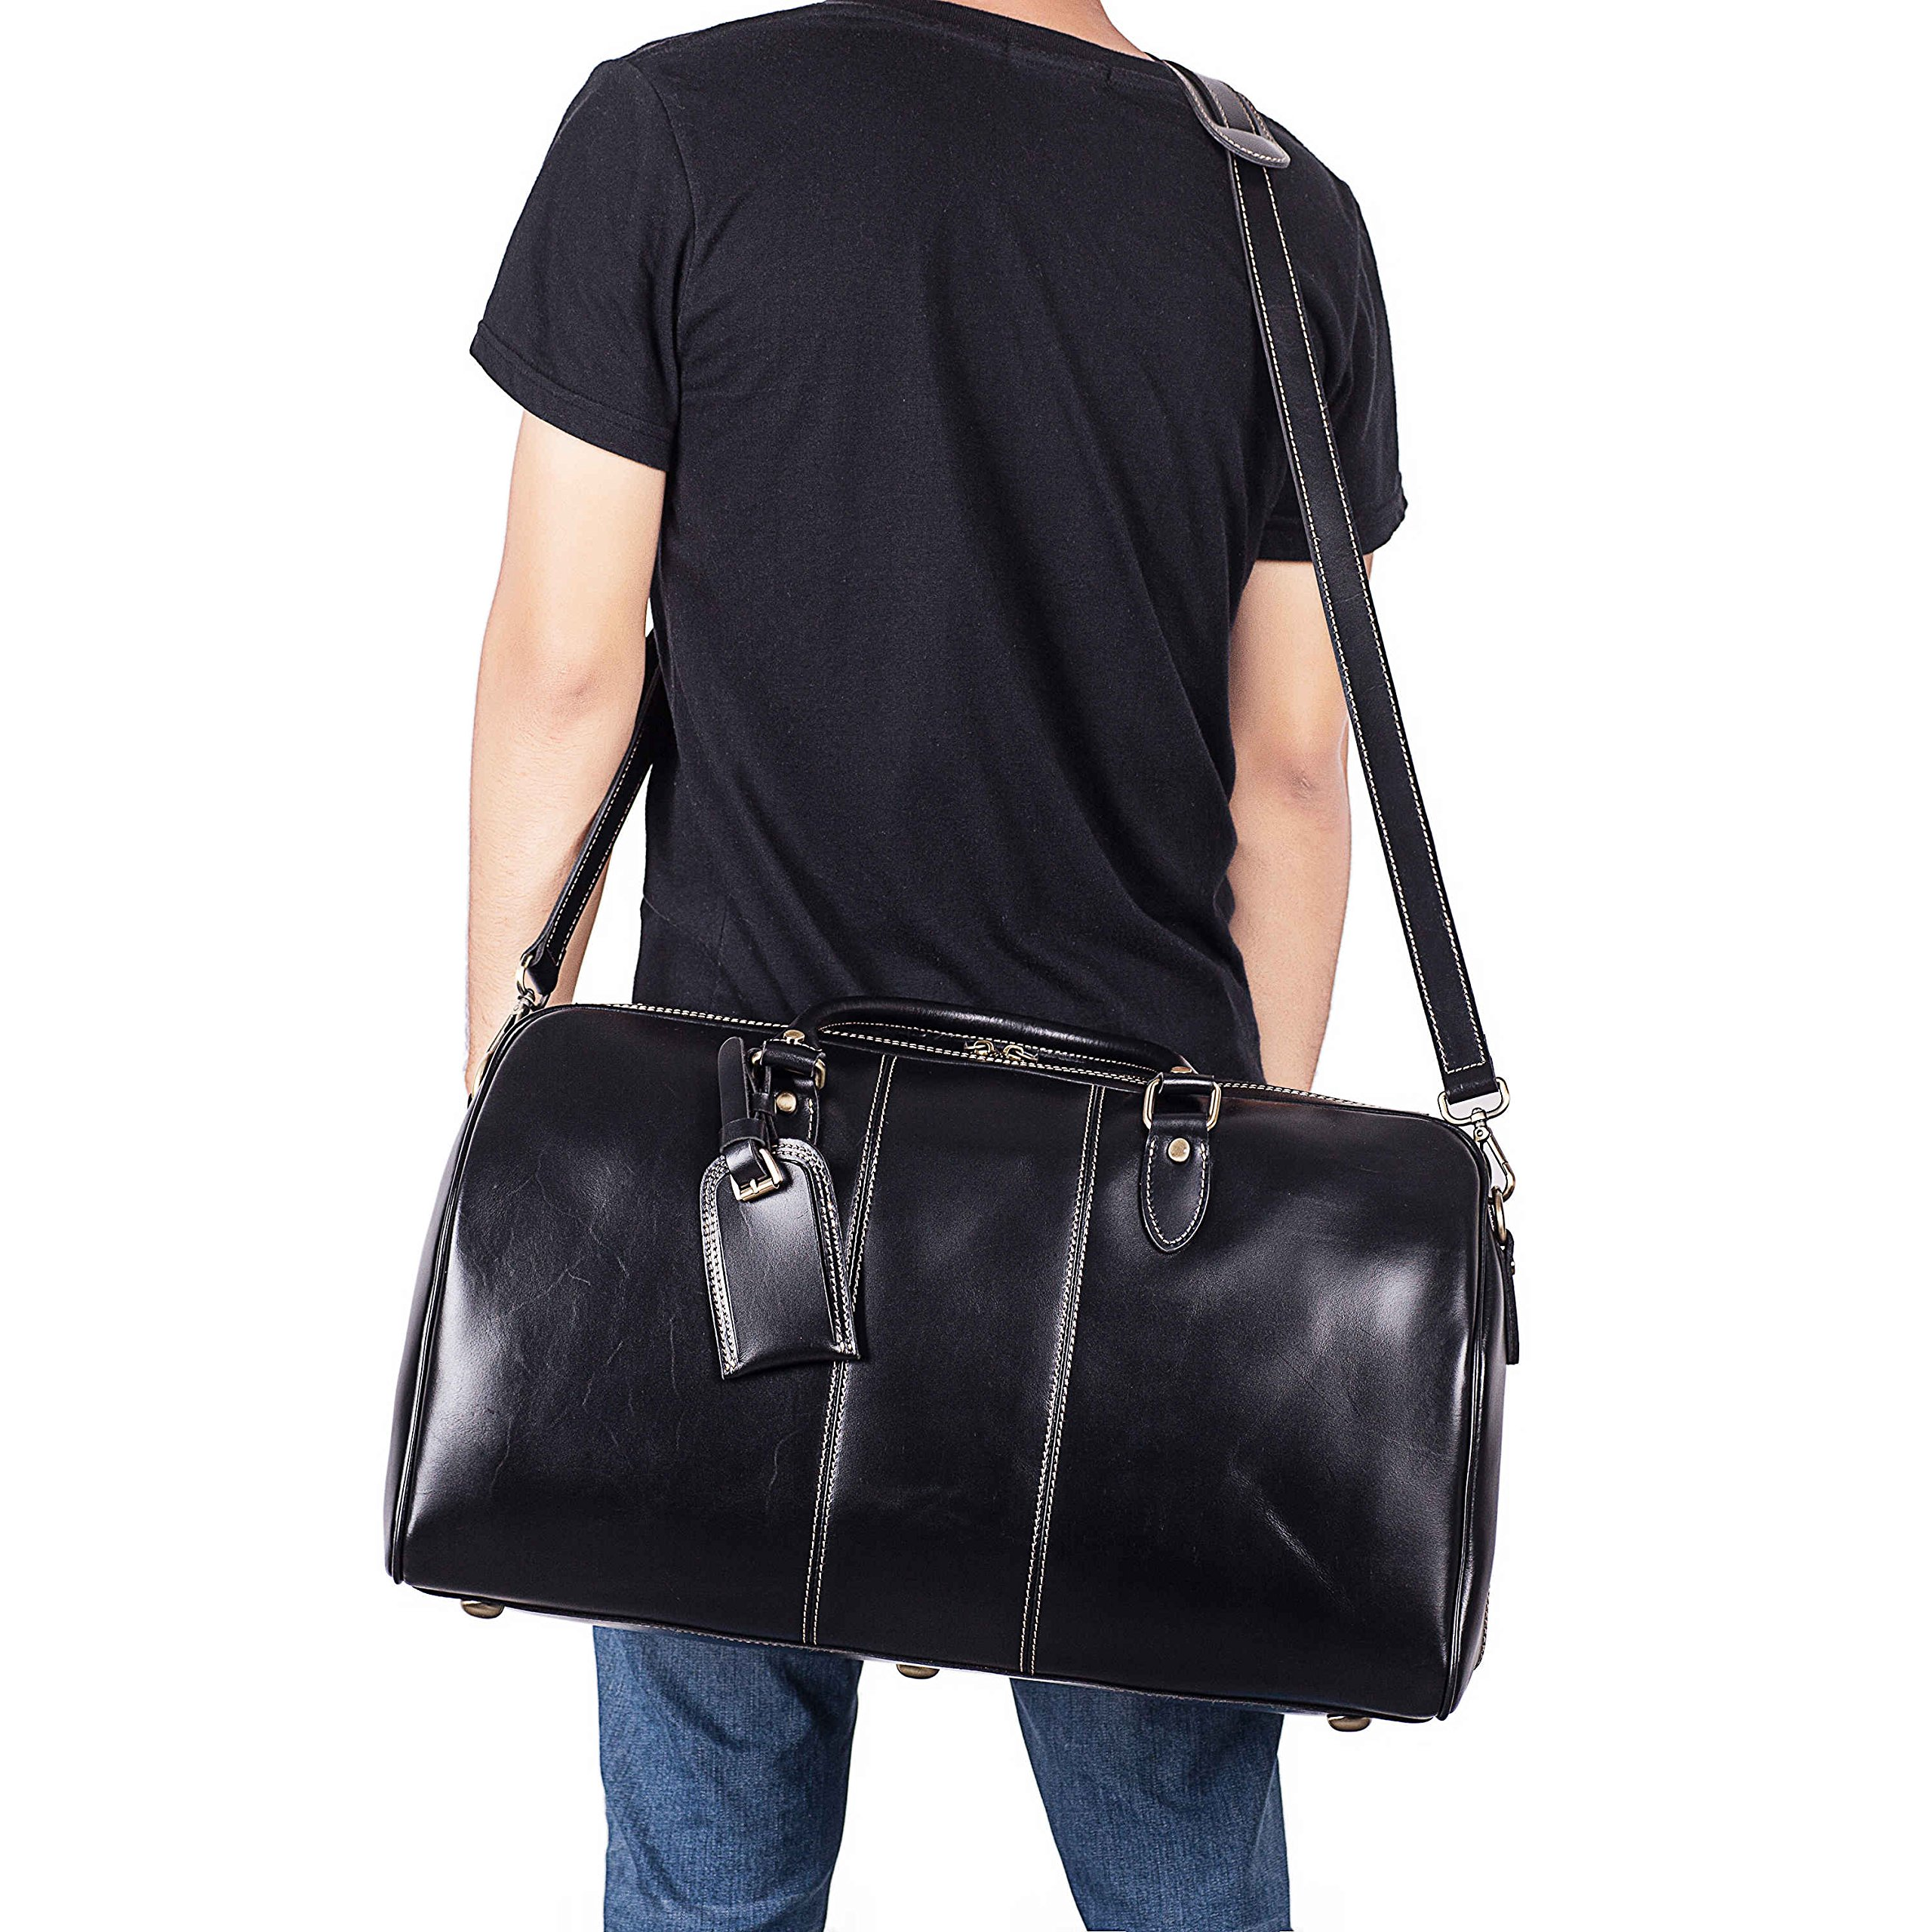 Leather Duffel Bag Travel Overnight Gym Sports Weekender Tote Bags Black by Kissloves (Image #5)